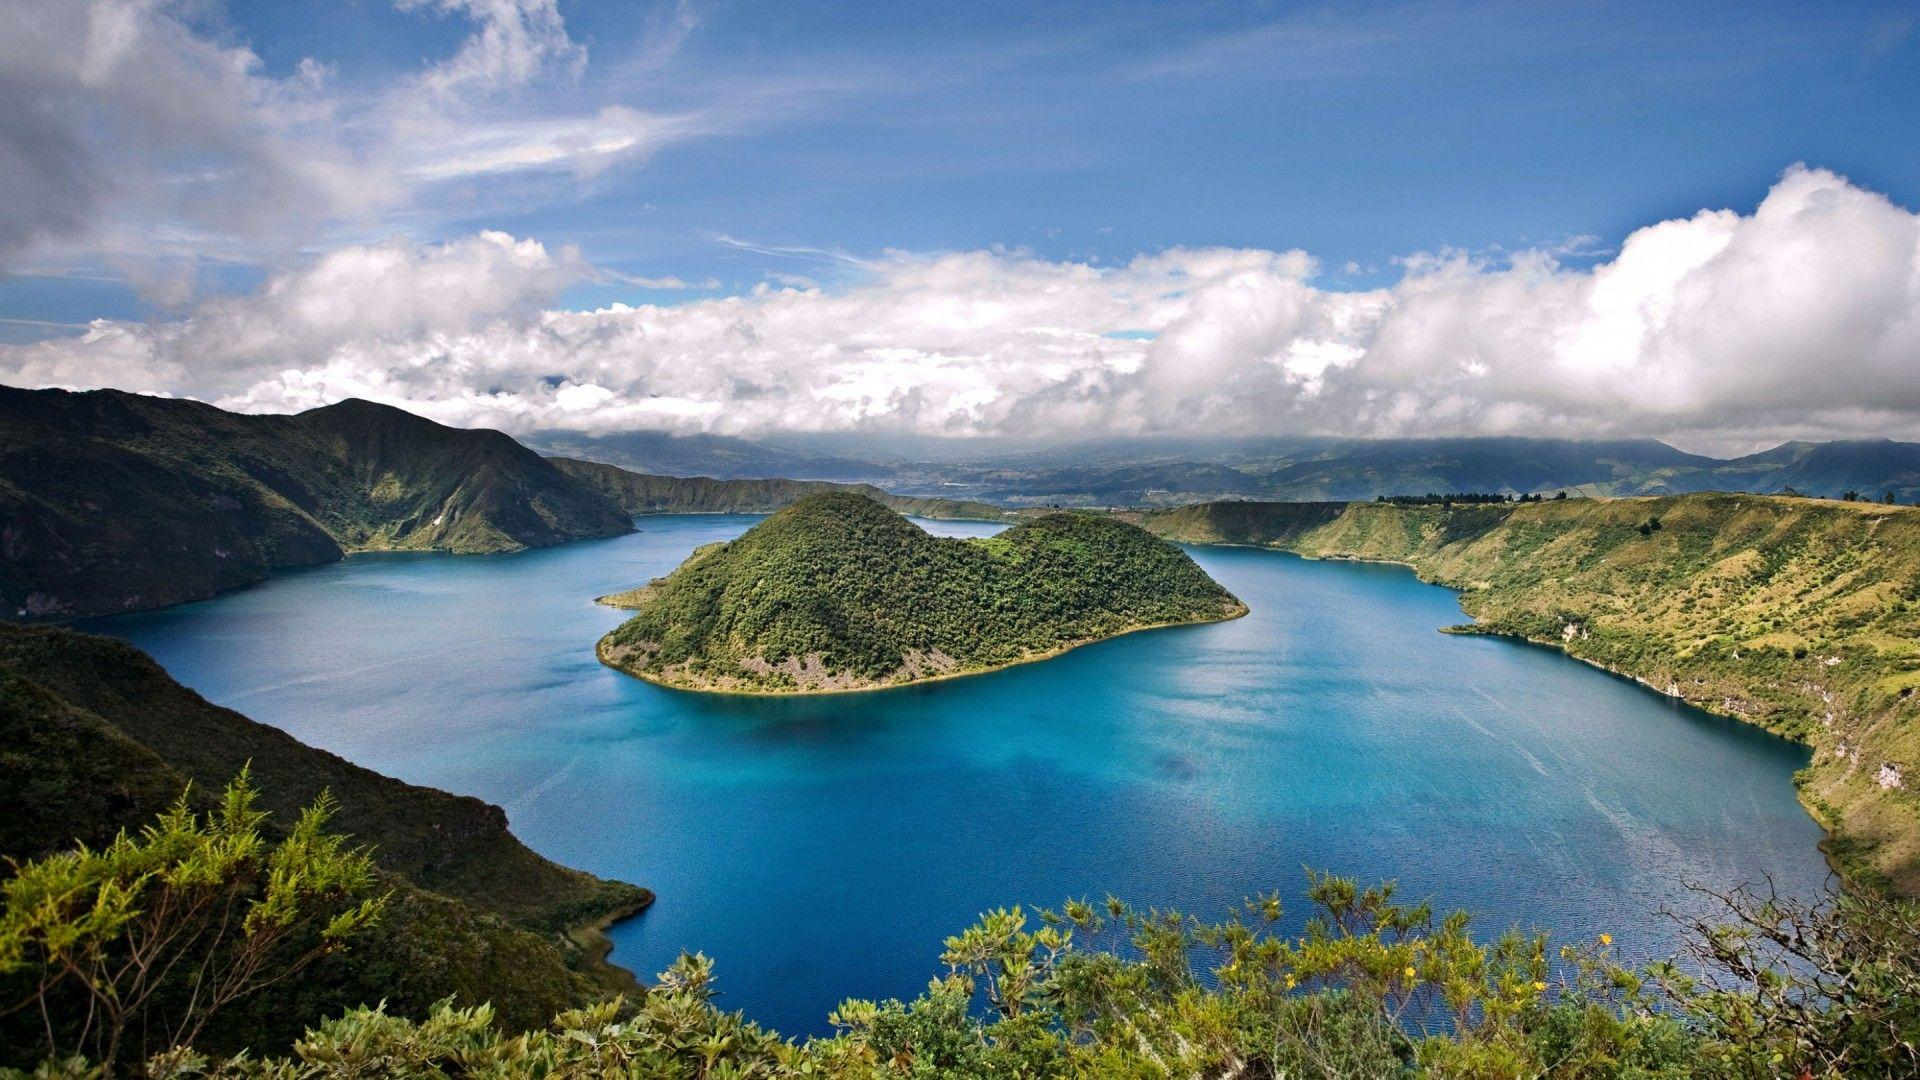 A Wonderful Lake With Turquoise Blue Water Island Mountains With ...